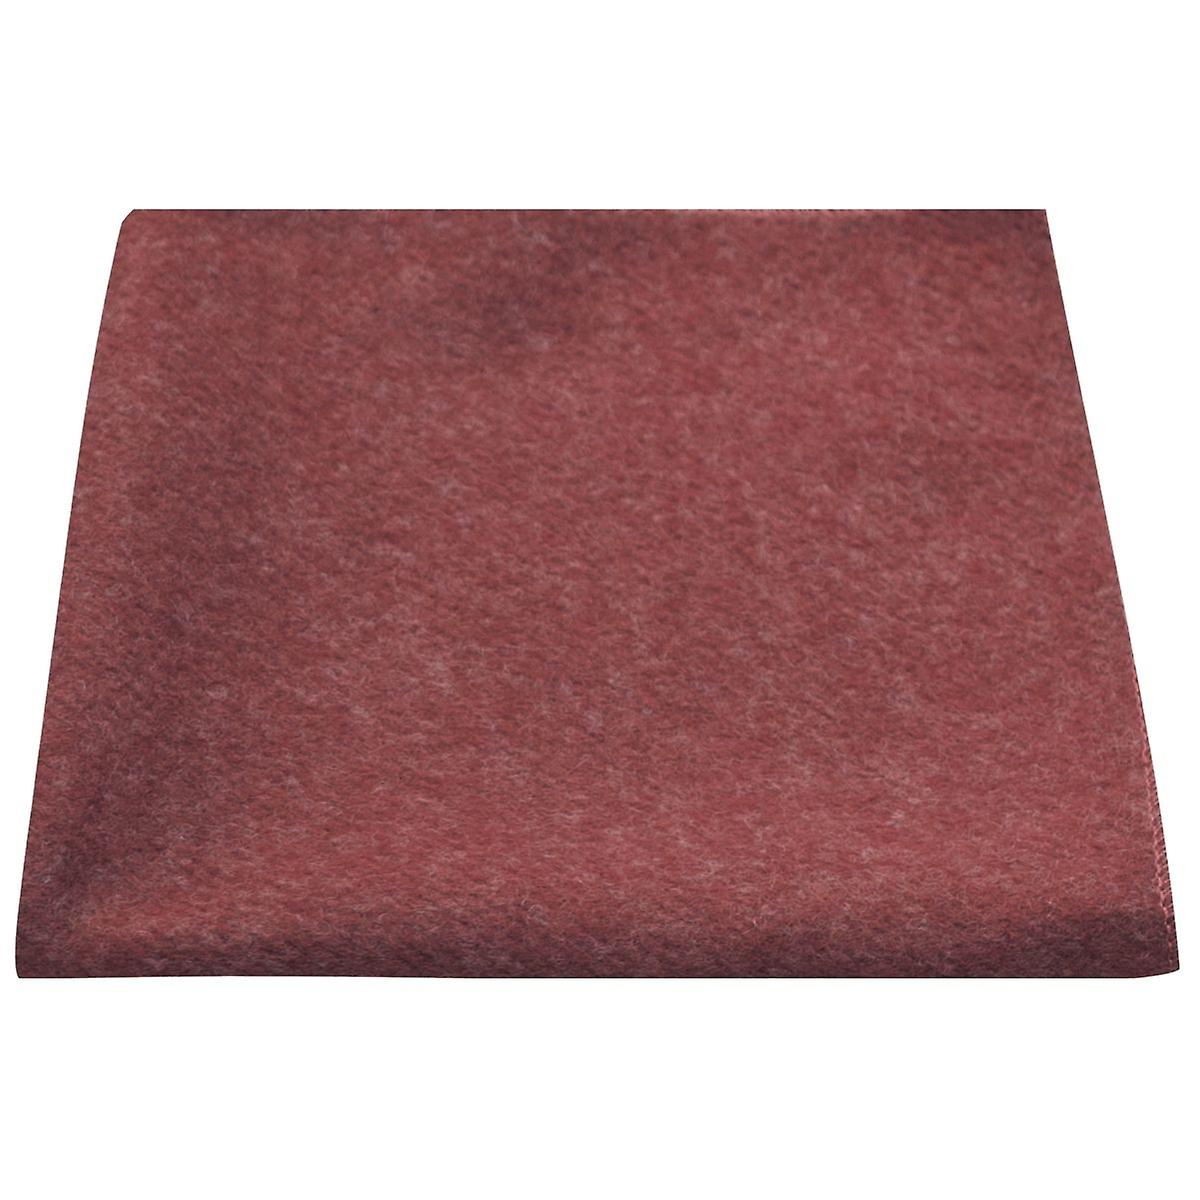 Luxury Maroon Red Donegal Tweed Pocket Square, Handkerchief